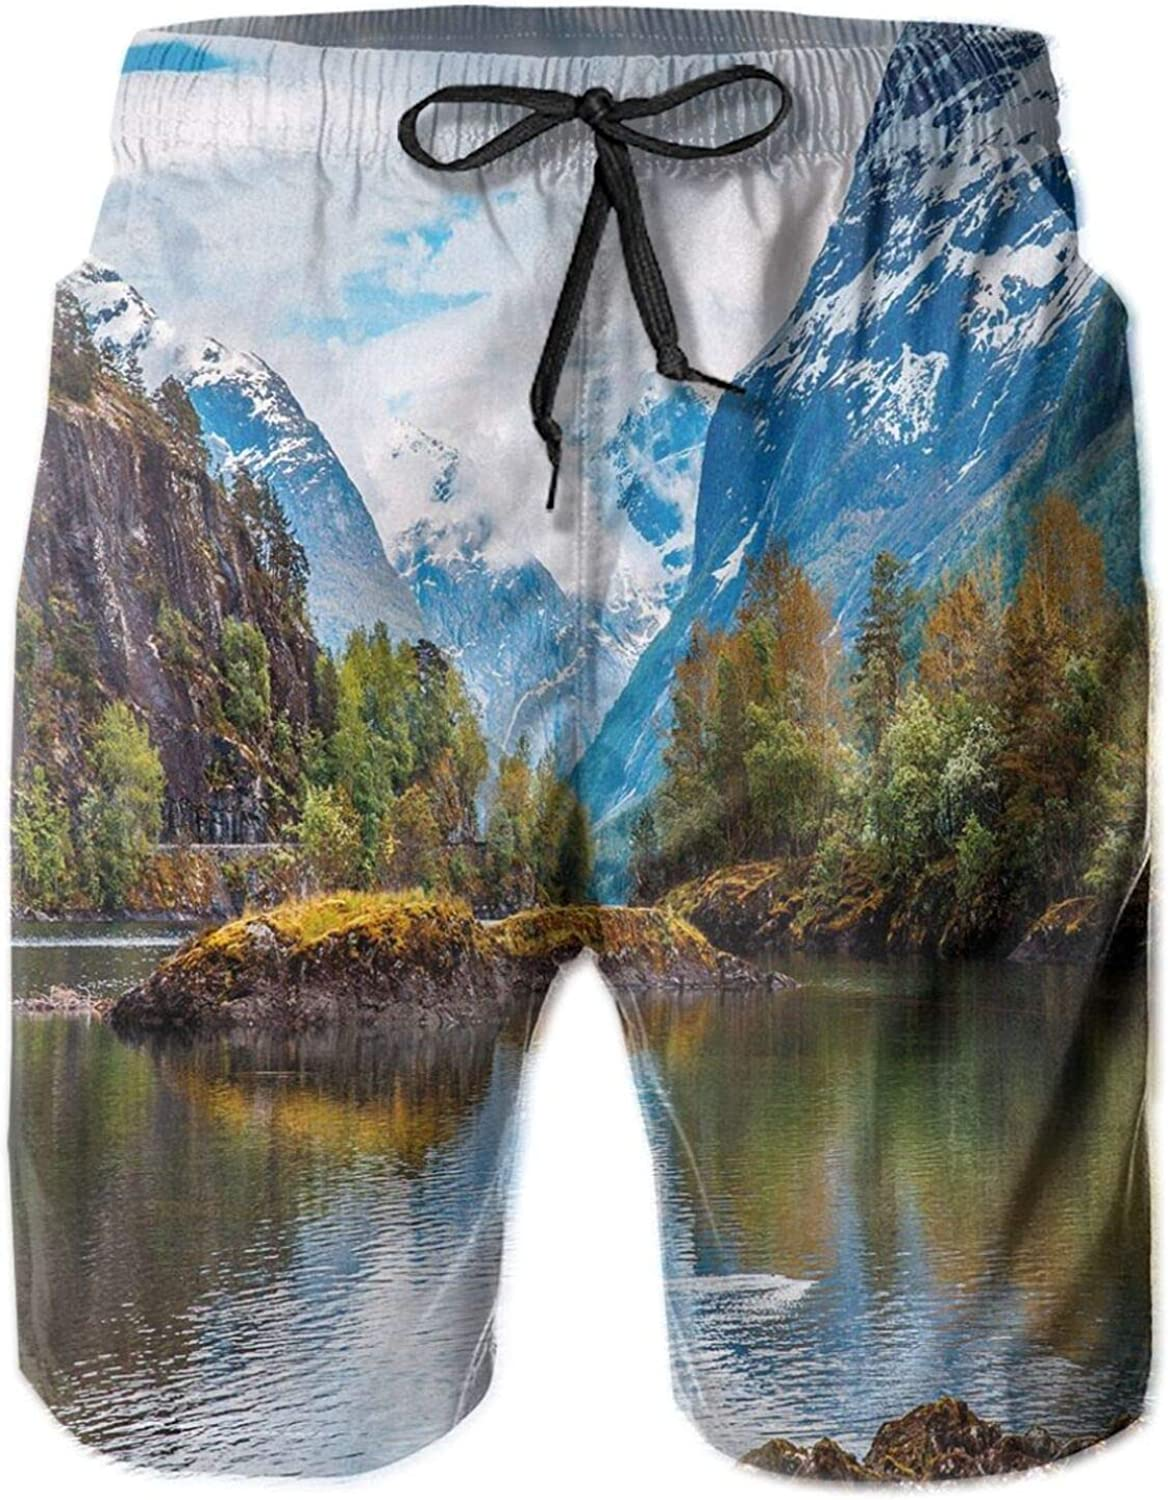 Norway Mountain Range with Snowy Peaks by The Lake Fishing Nordic Northern Landscape Mens Swim Shorts Casual Workout Short Pants Drawstring Beach Shorts,XL